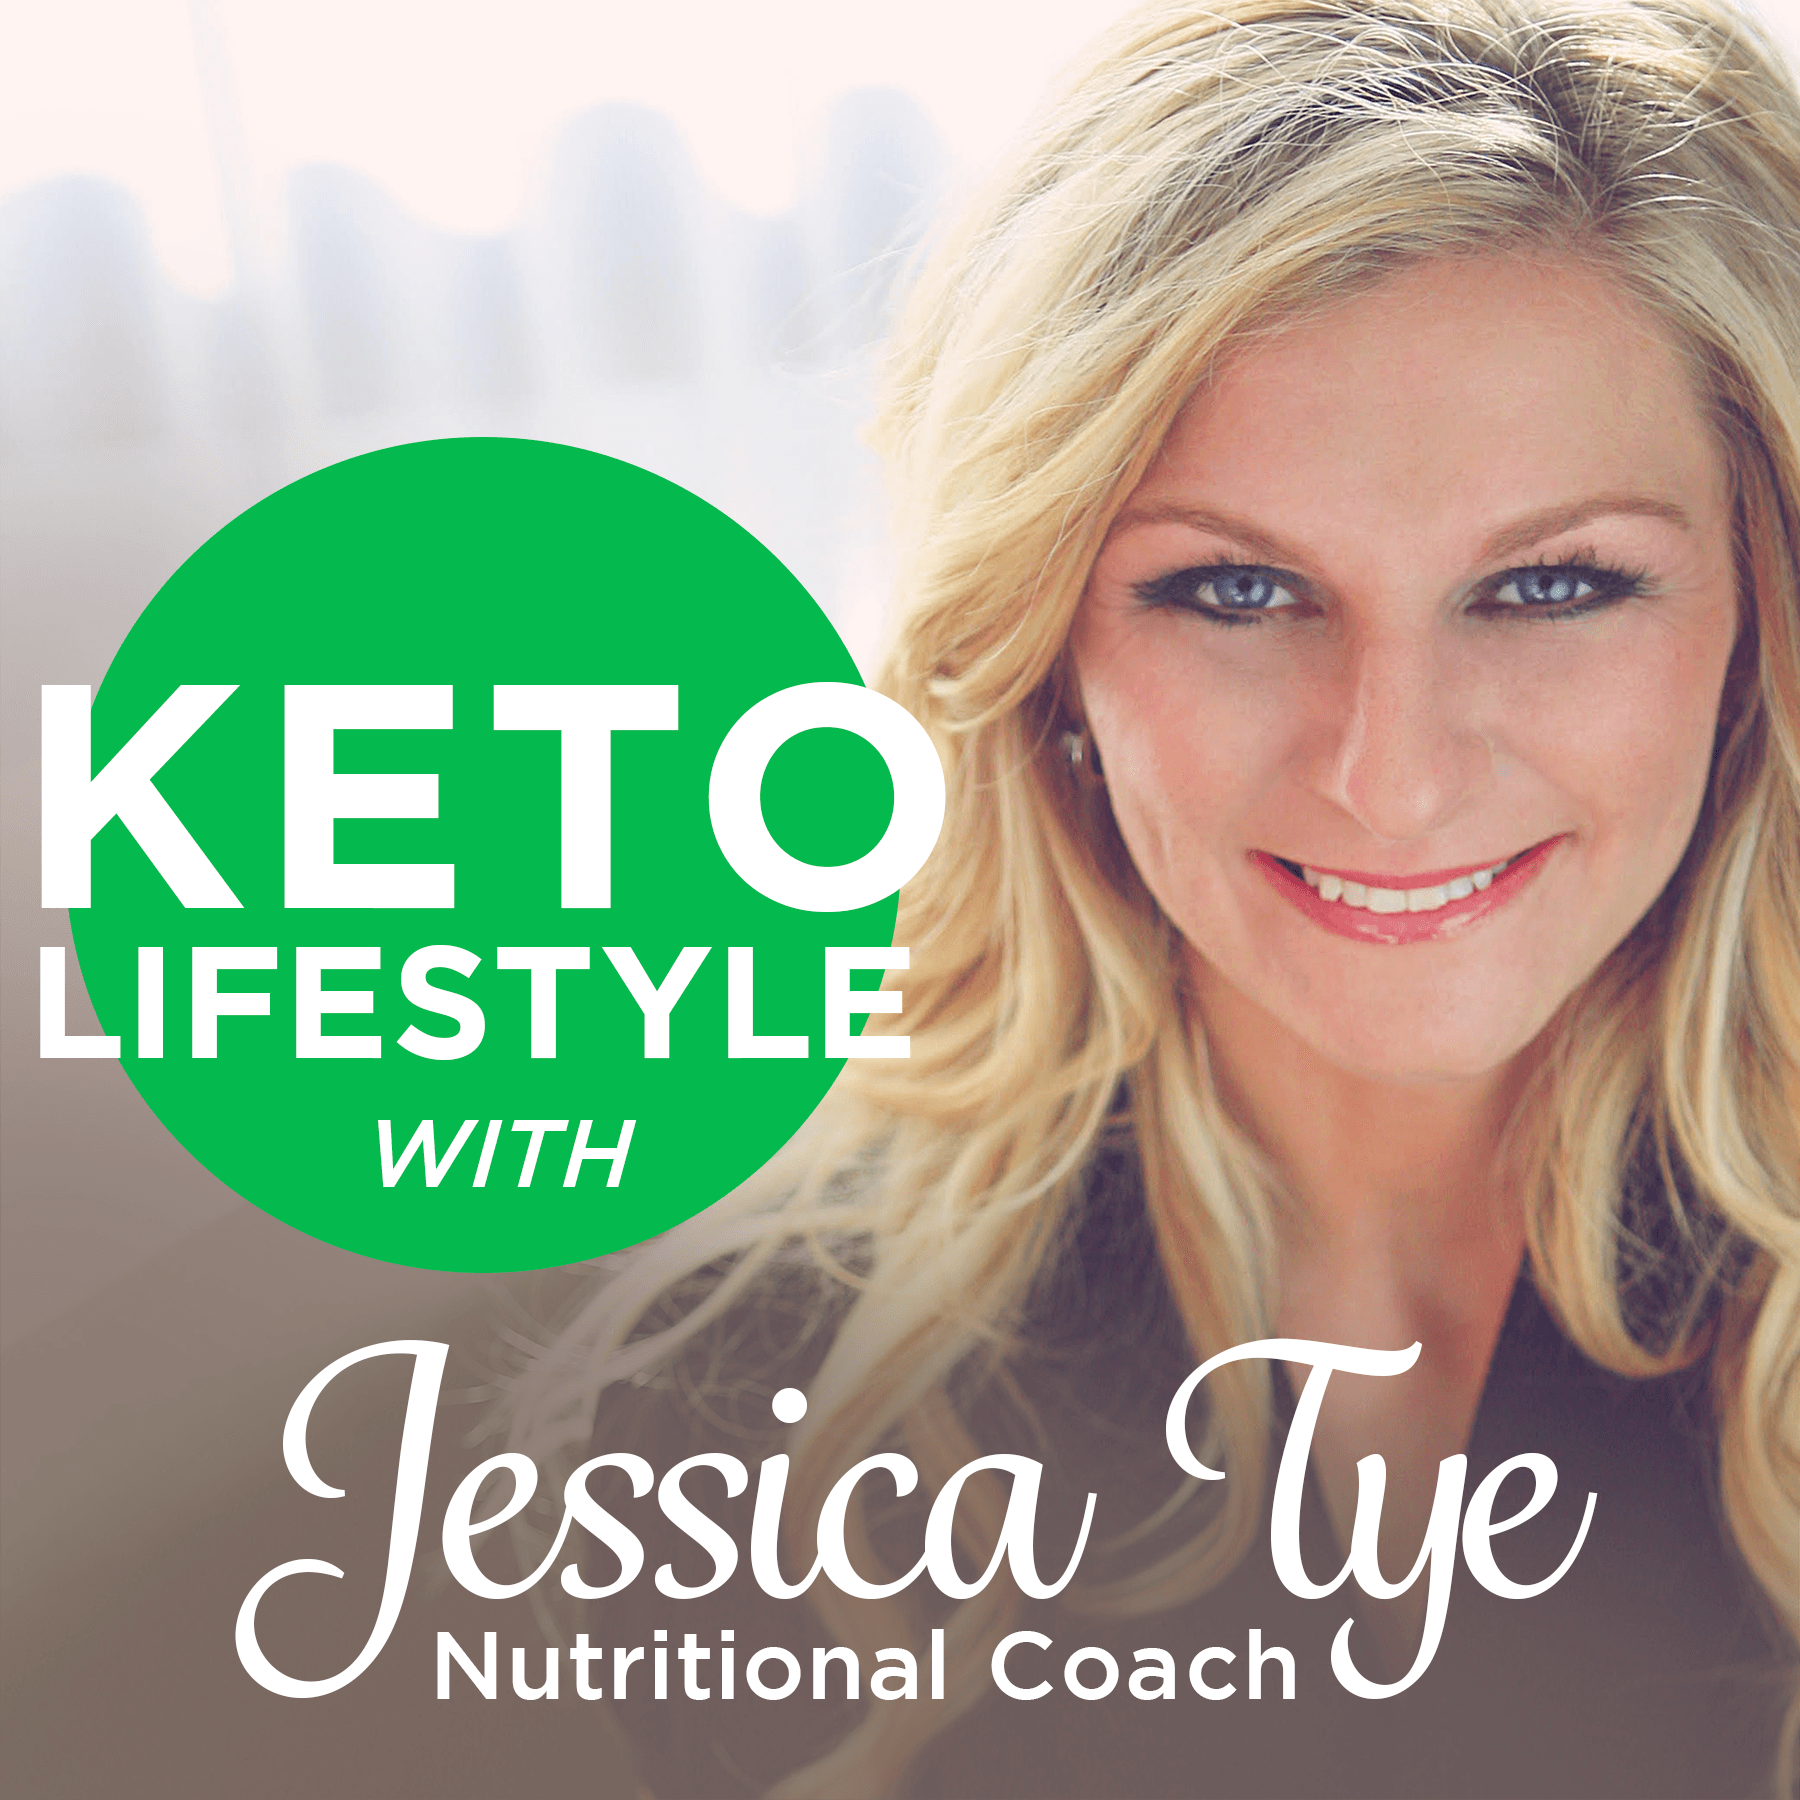 Keto Lifestyle with Jessica Tye, Nutritional Coach